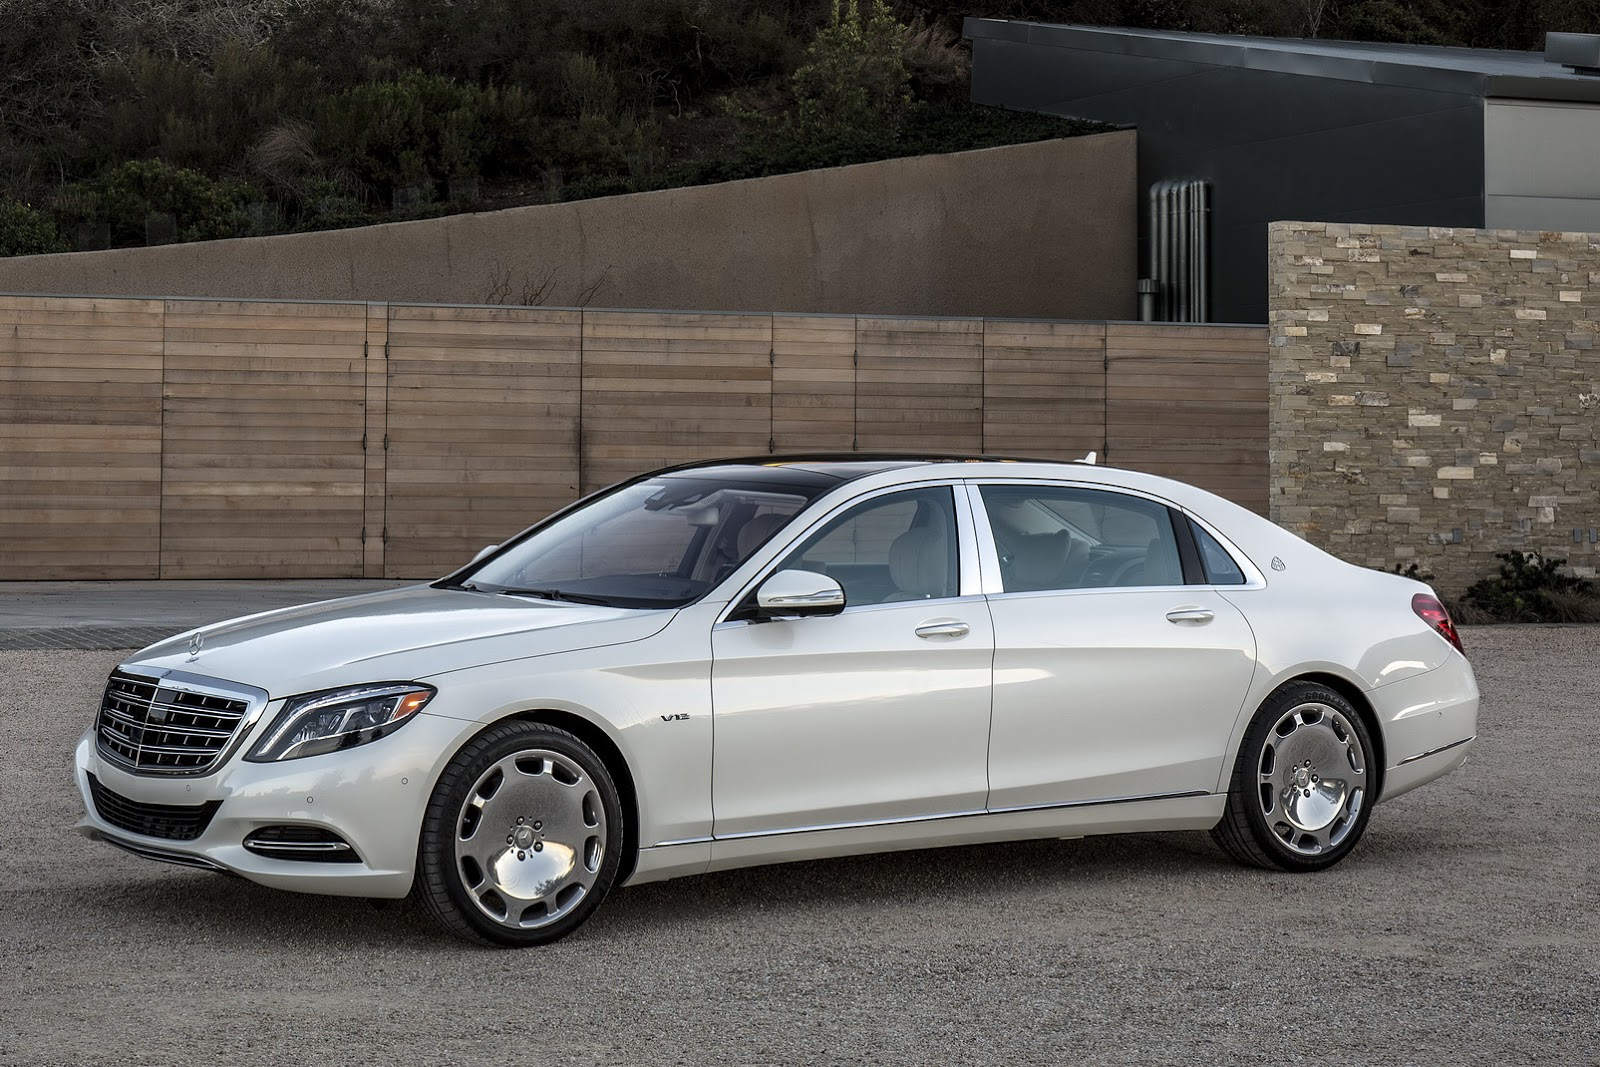 Get To Know The 2016 Mercedes Maybach S600 In 57 New Photos Carscoops